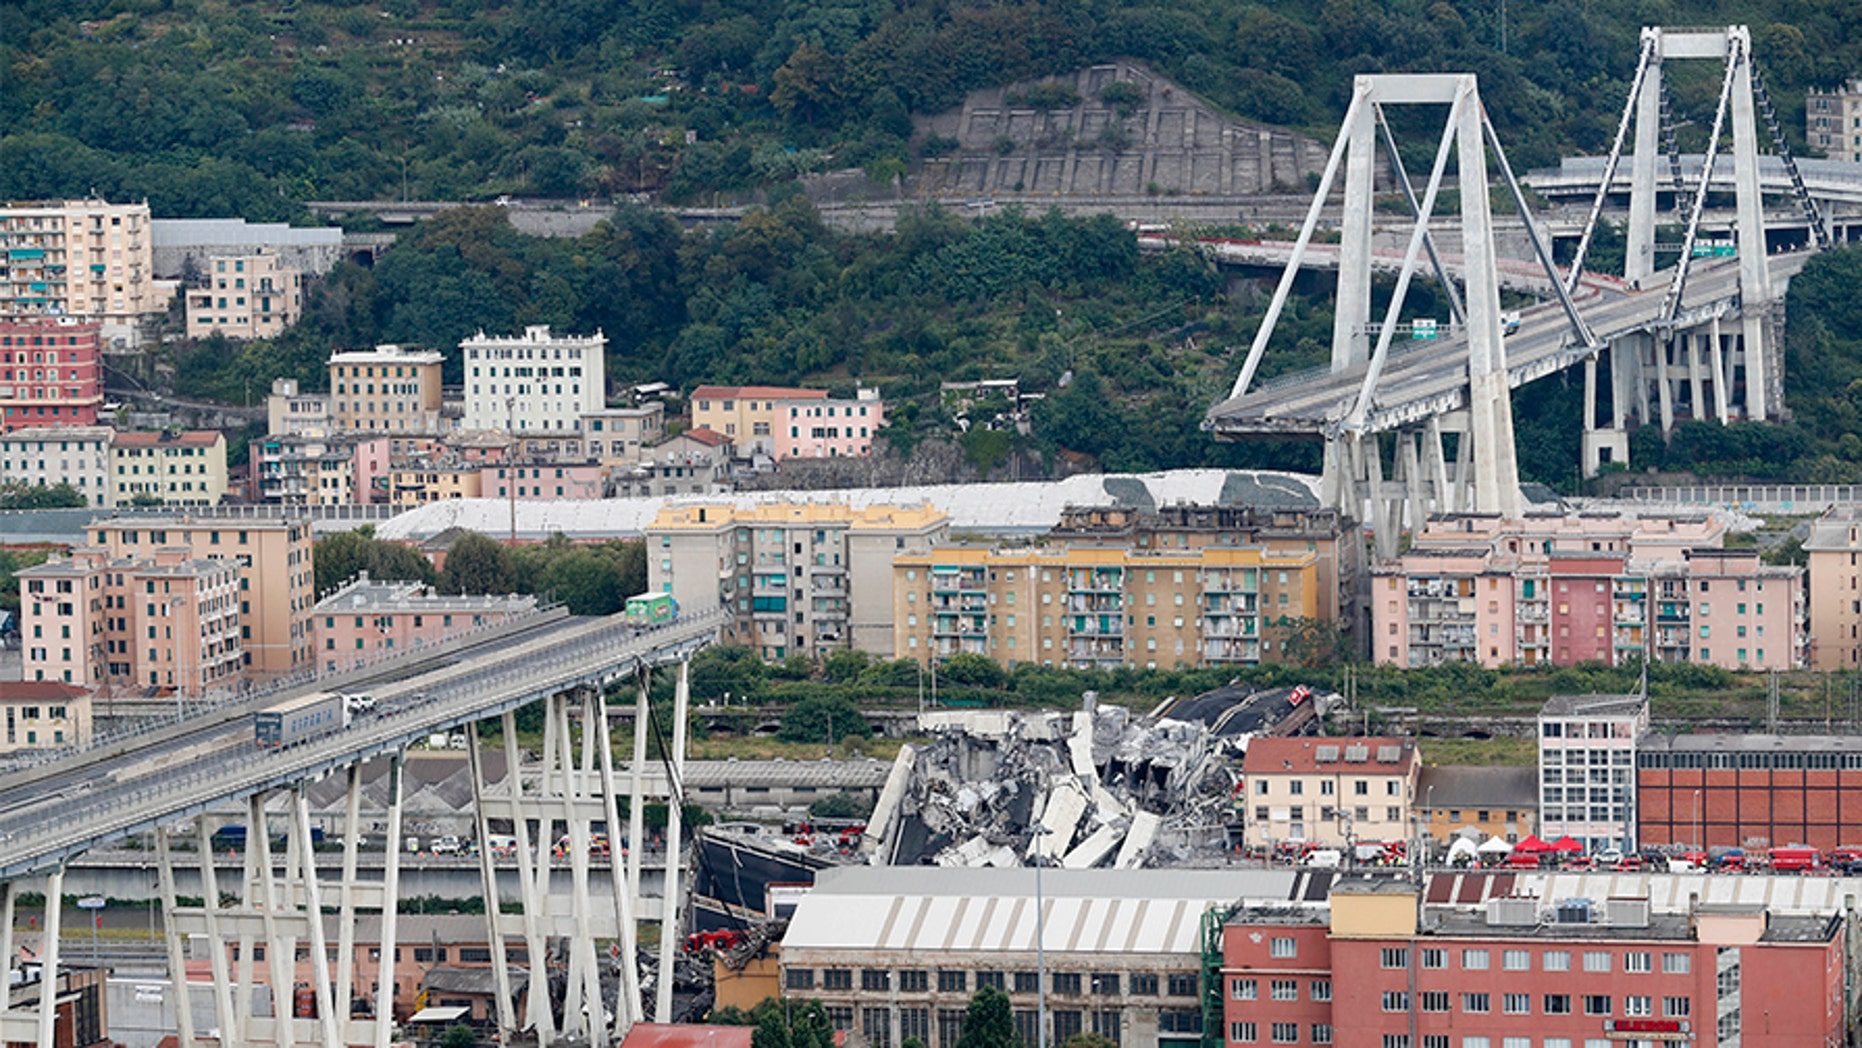 Cars are blocked on the Morandi highway bridge after a section of it collapsed, in Genoa, northern Italy, Tuesday, Aug. 14, 2018. A large section of the bridge collapsed over an industrial area in the Italian city of Genova during a sudden and violent storm, leaving vehicles crushed in rubble below. (AP Photo/Antonio Calanni)